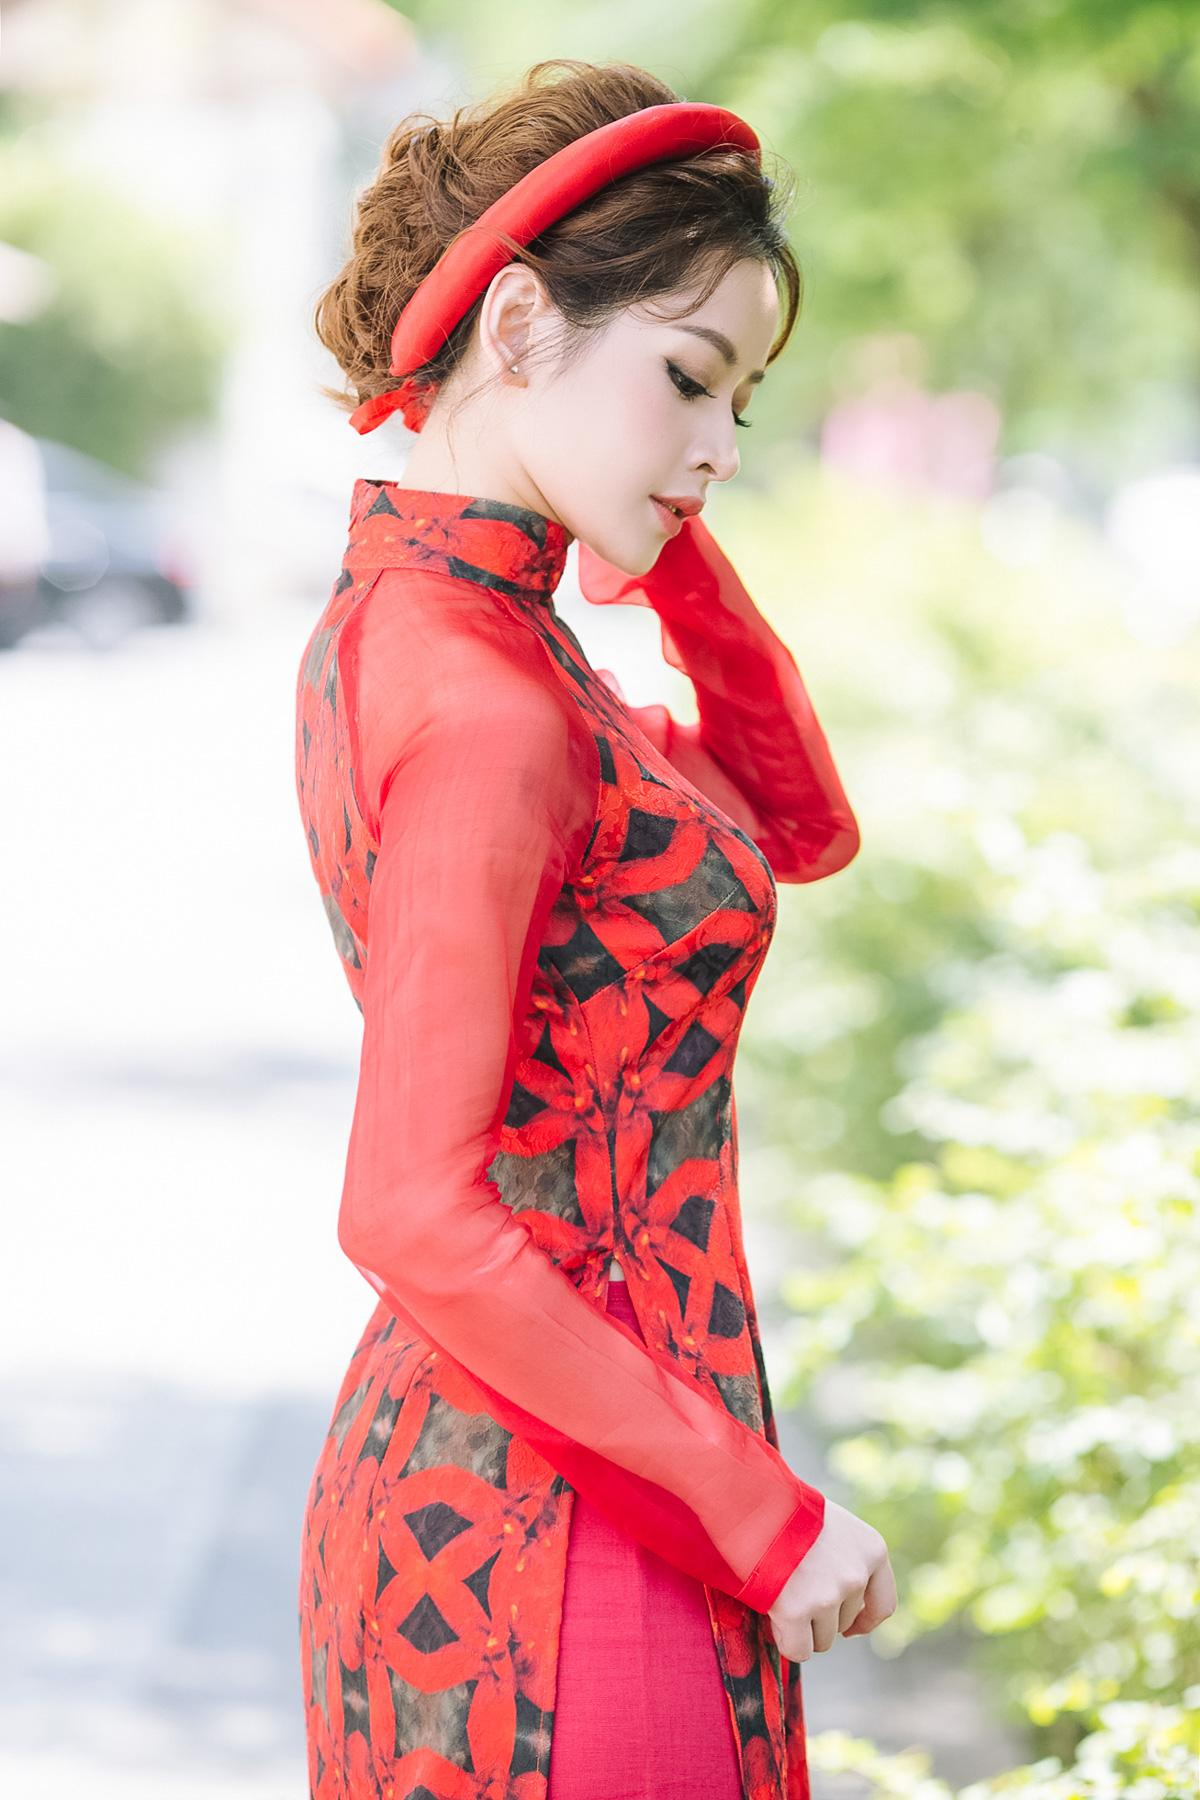 chi pu mac ao dai don tay dua lung danh 9 lan vo dich the gioi 3